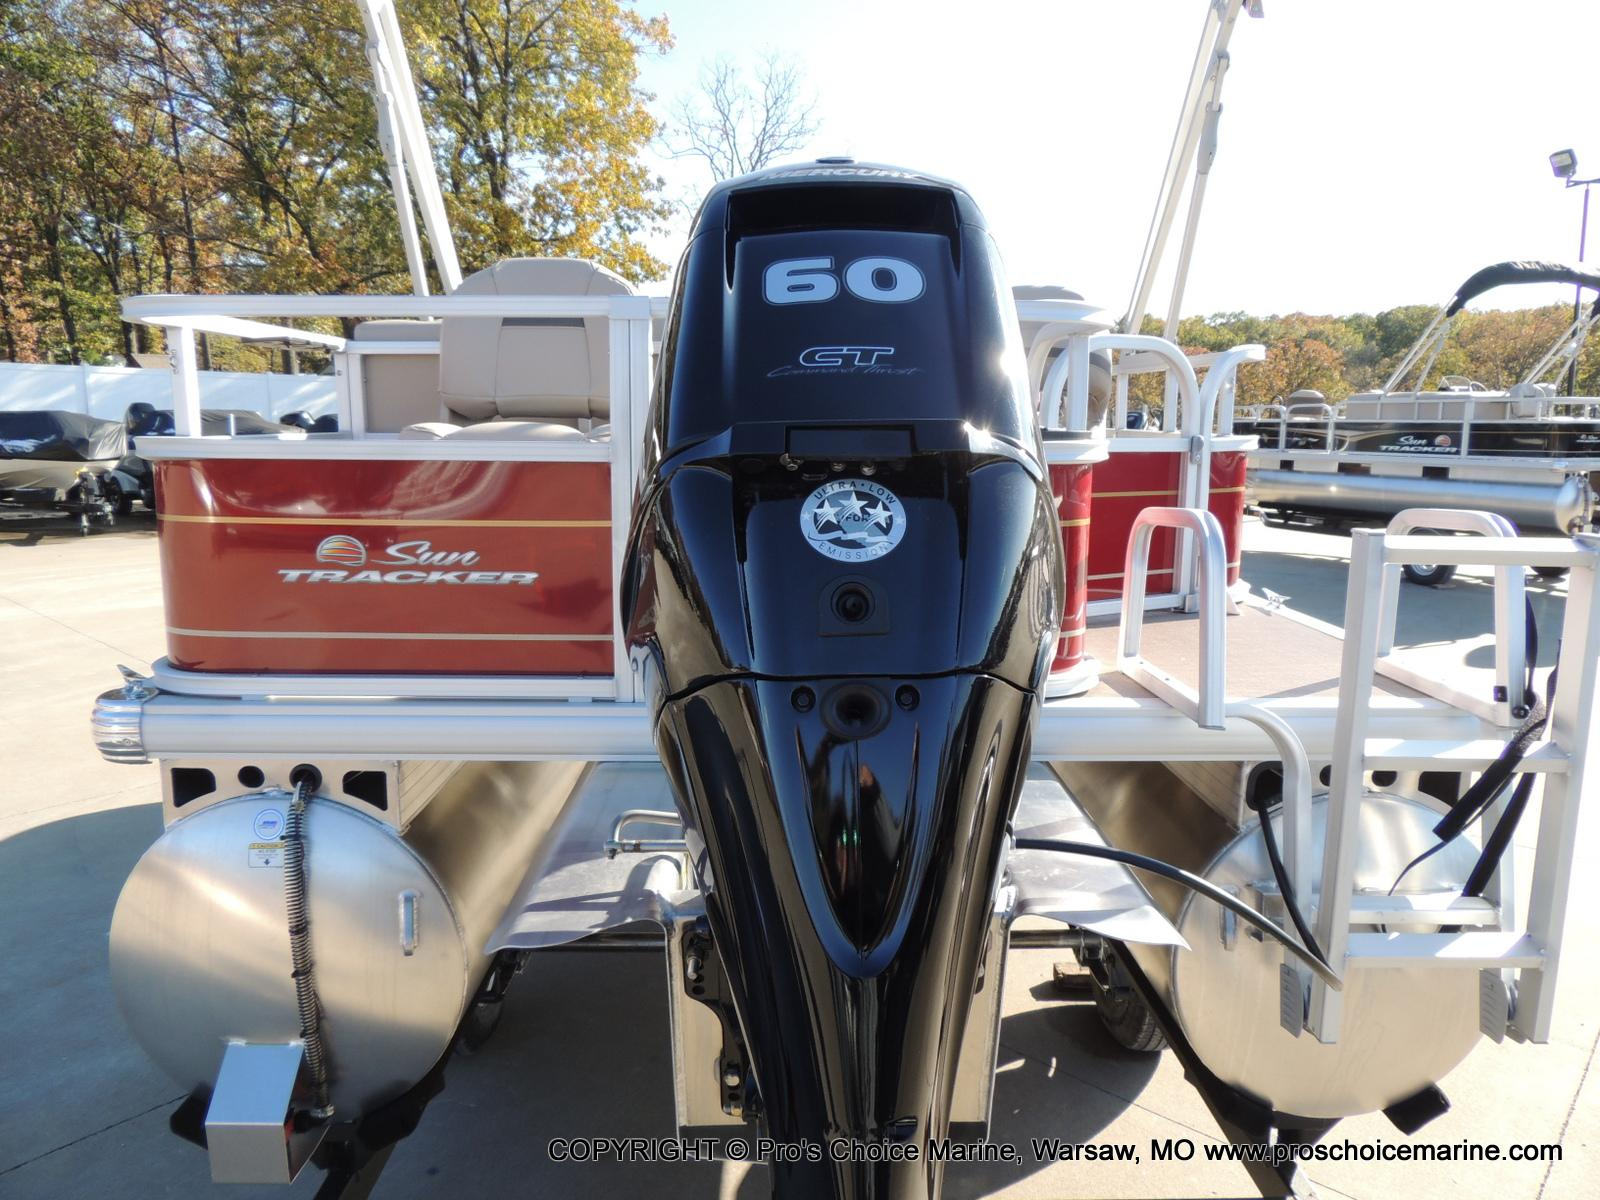 2020 Sun Tracker boat for sale, model of the boat is Bass Buggy 18 DLX & Image # 6 of 50